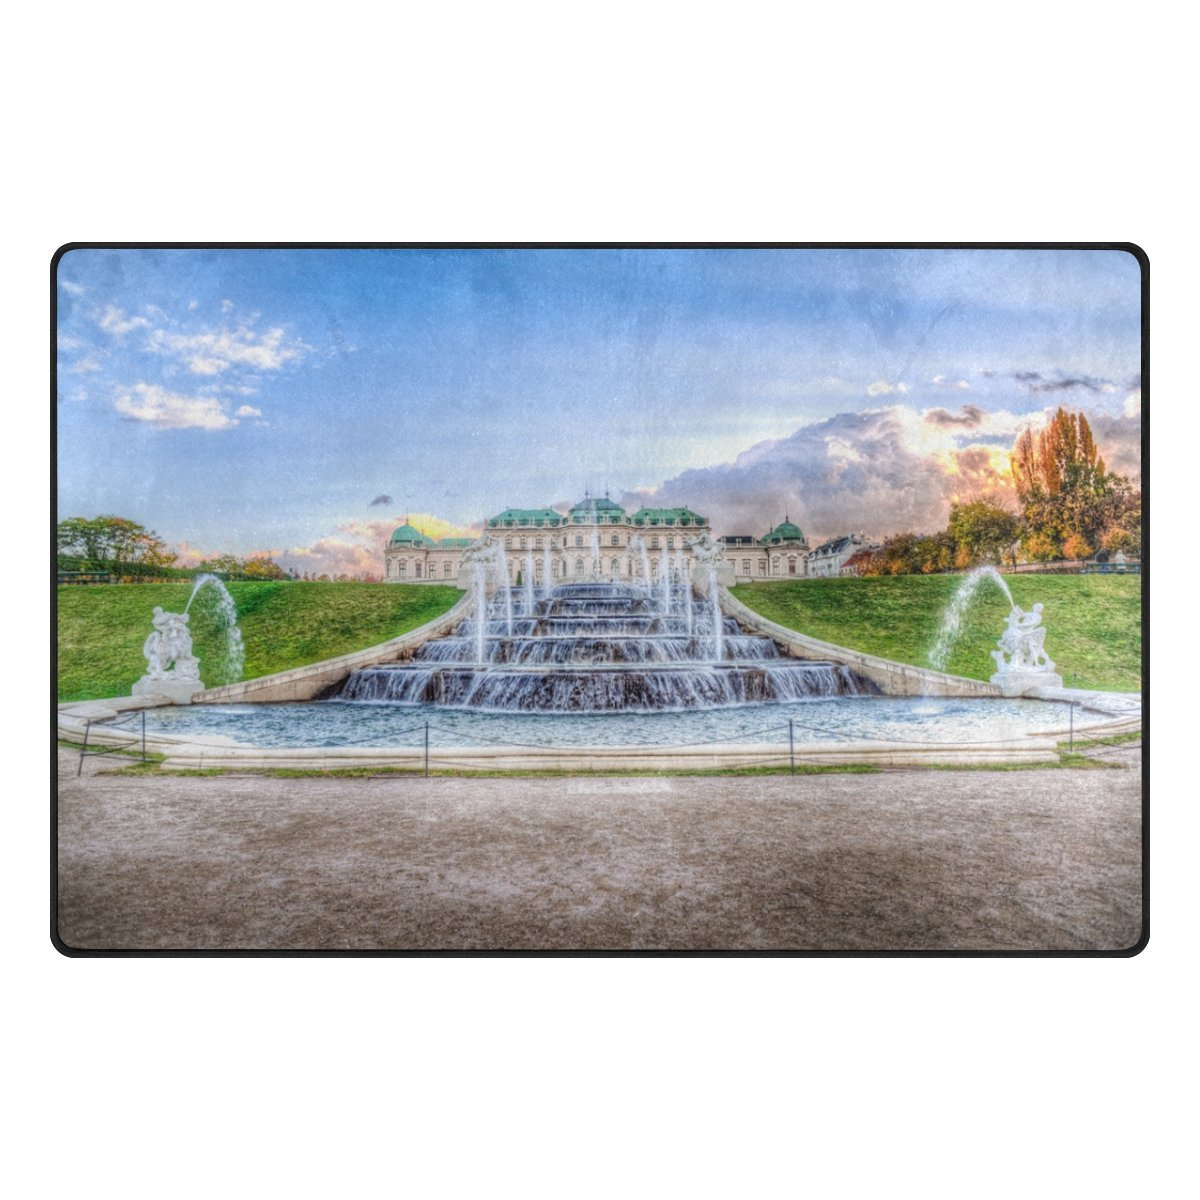 Jpopo Calm Clouds Fountain Area Rug Doormat 31'' L x 20'' W Non Slip Floor Rug Entrance Mat Indoor Bathroom Mats for Bathroom Dining Room Decorative